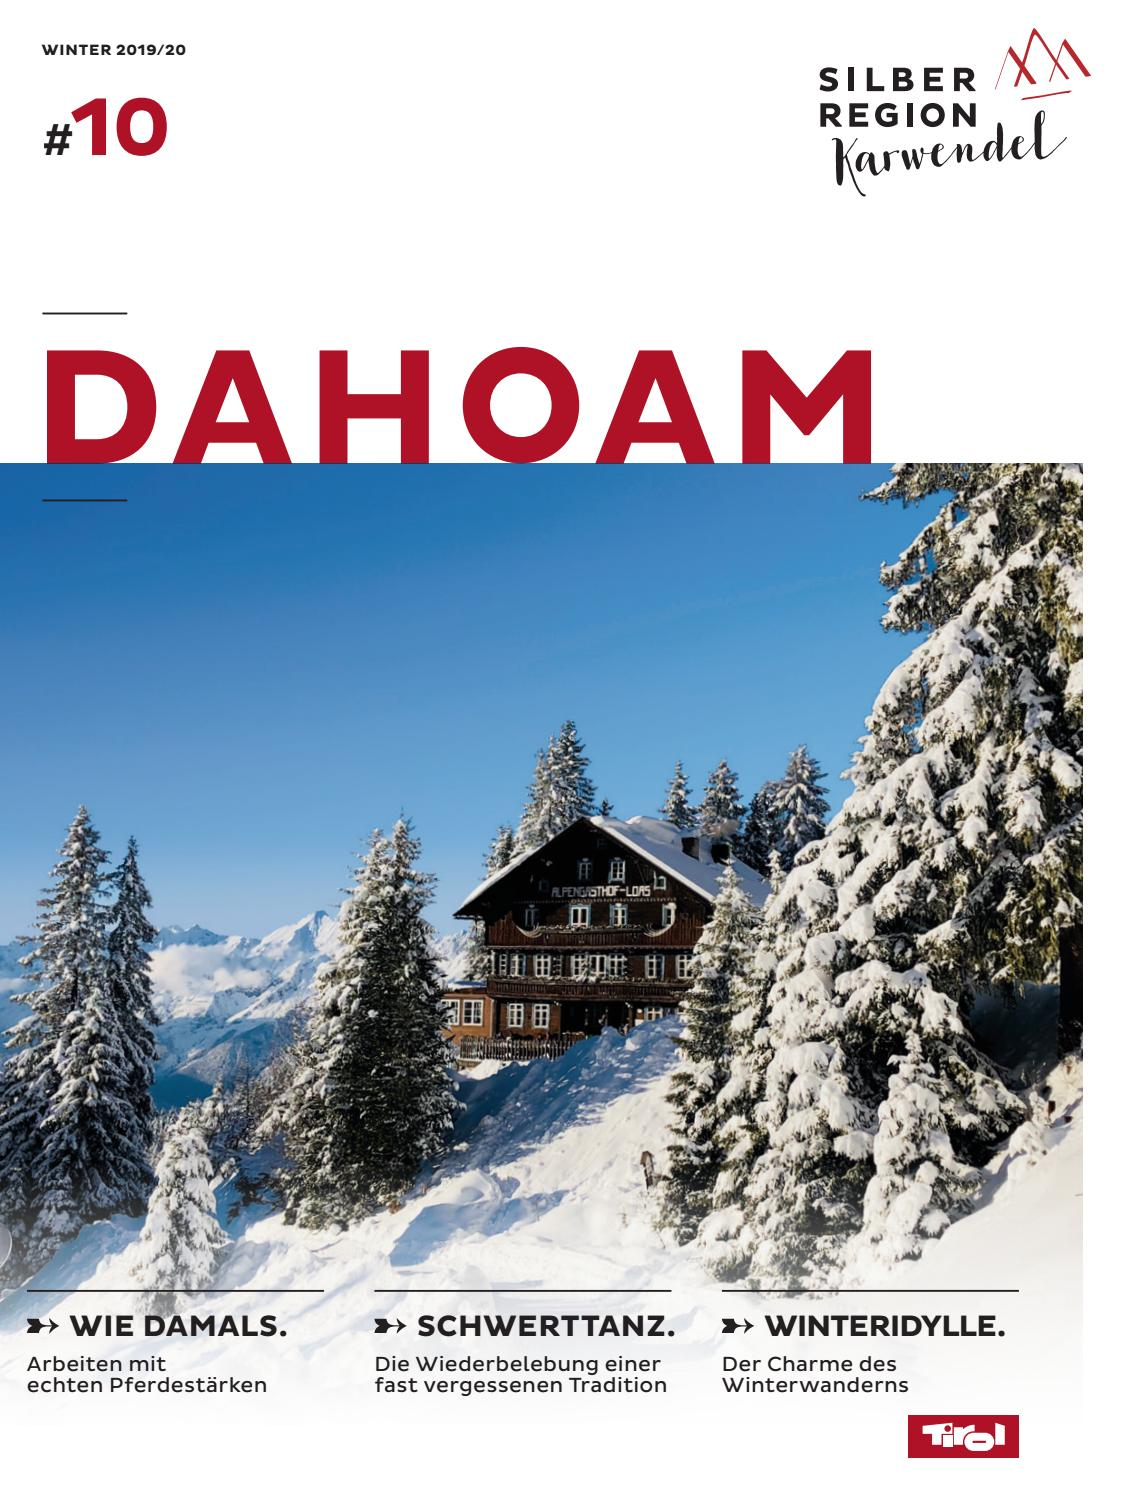 Dahoam Winter 2019 20 By Tvb Silberregion Karwendel Issuu